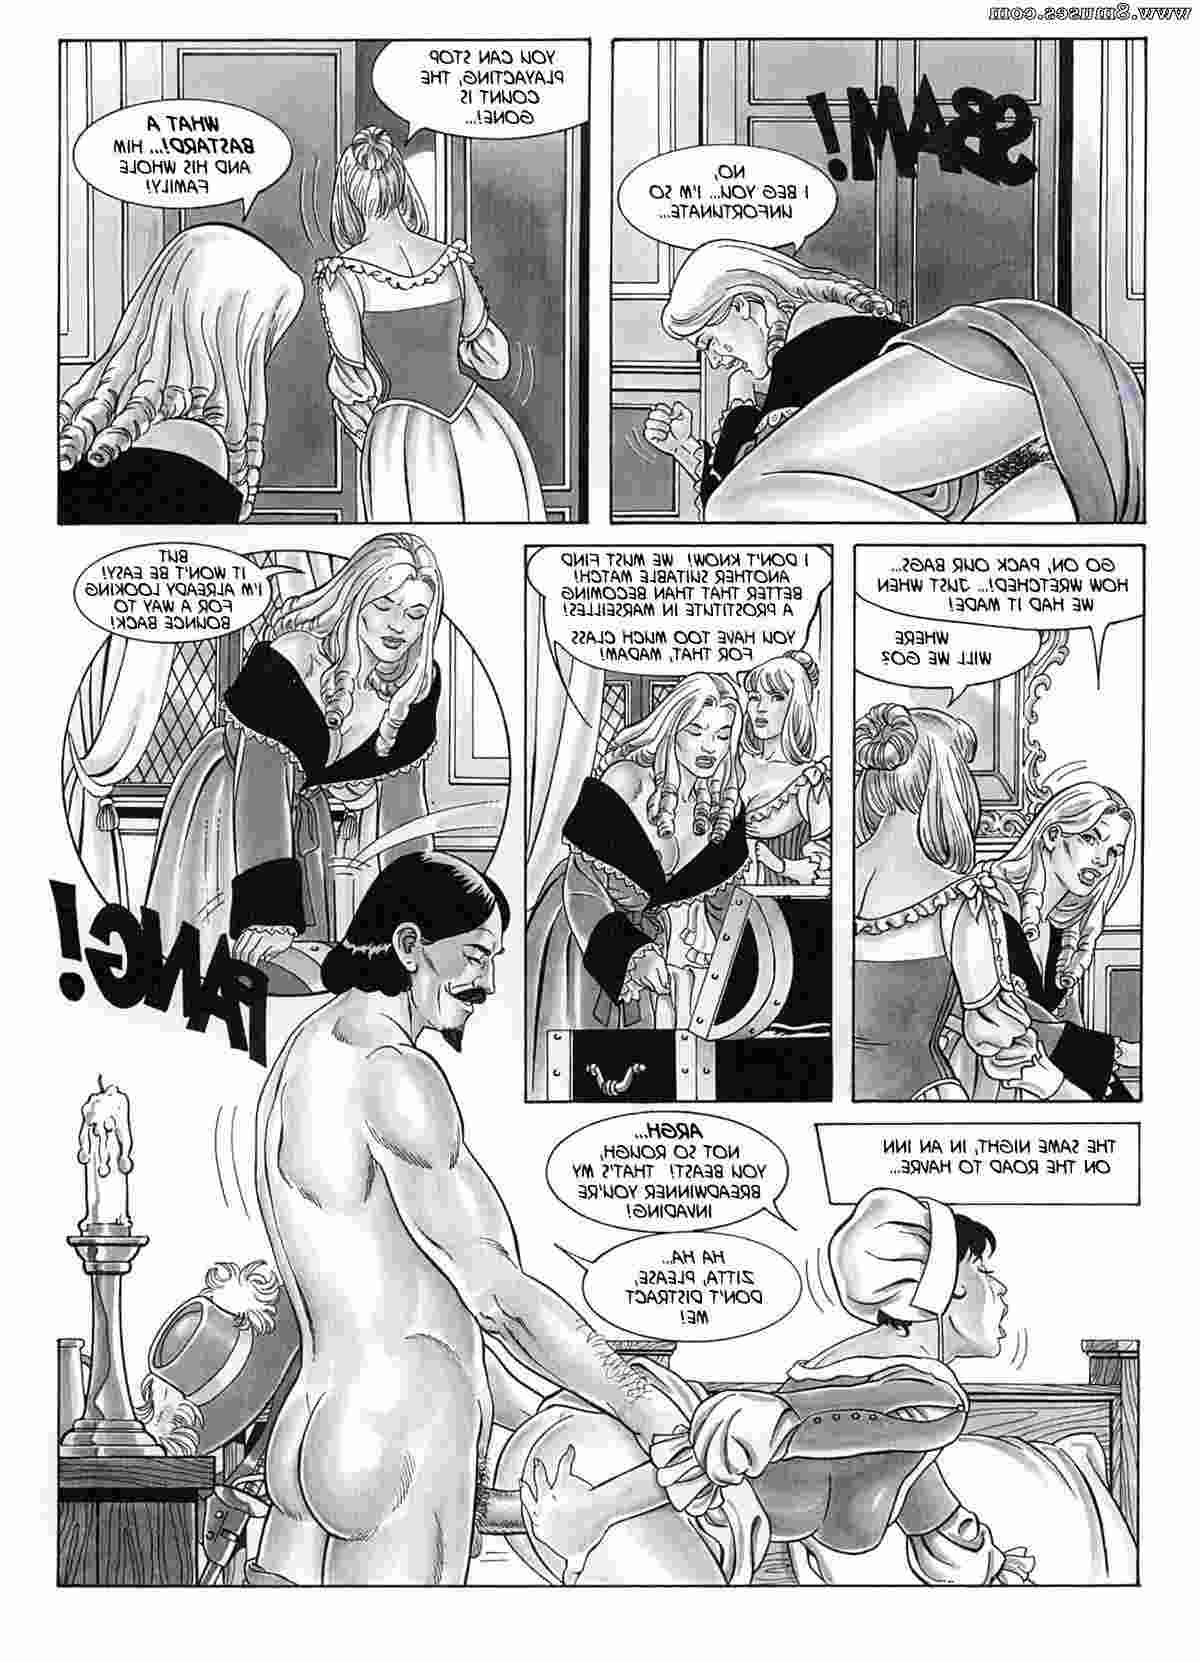 Stramaglia-Morale-Comics/Impetuous-Amber Impetuous_Amber__8muses_-_Sex_and_Porn_Comics_37.jpg